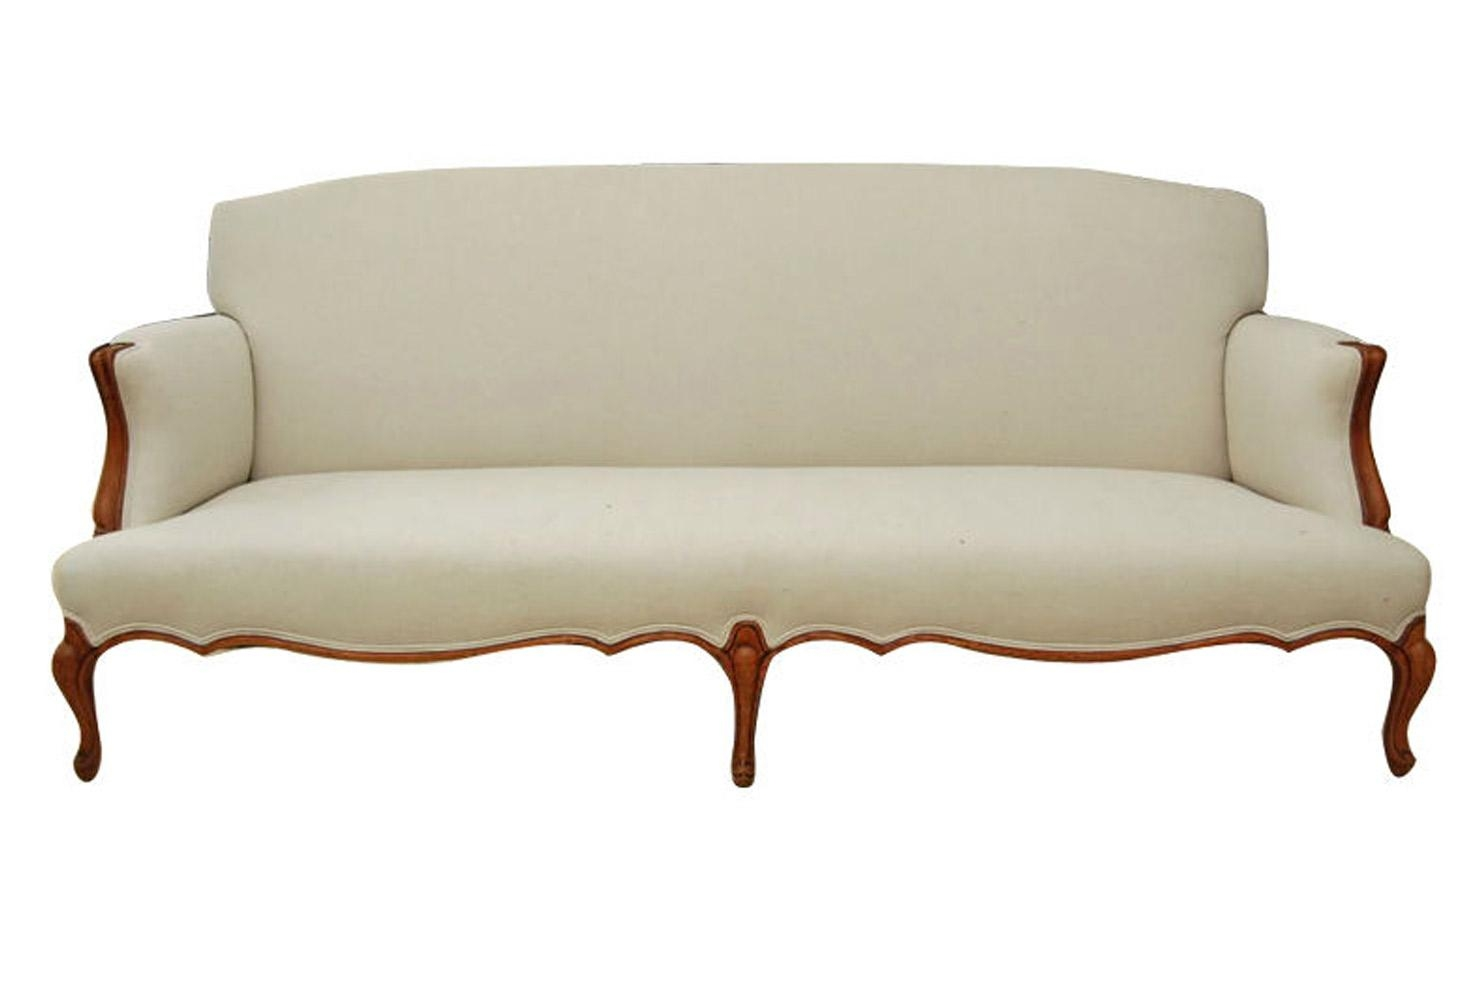 Vintage Style Sofas Vintage Knole Style Sofa In Neutral Linen At 1stdibs